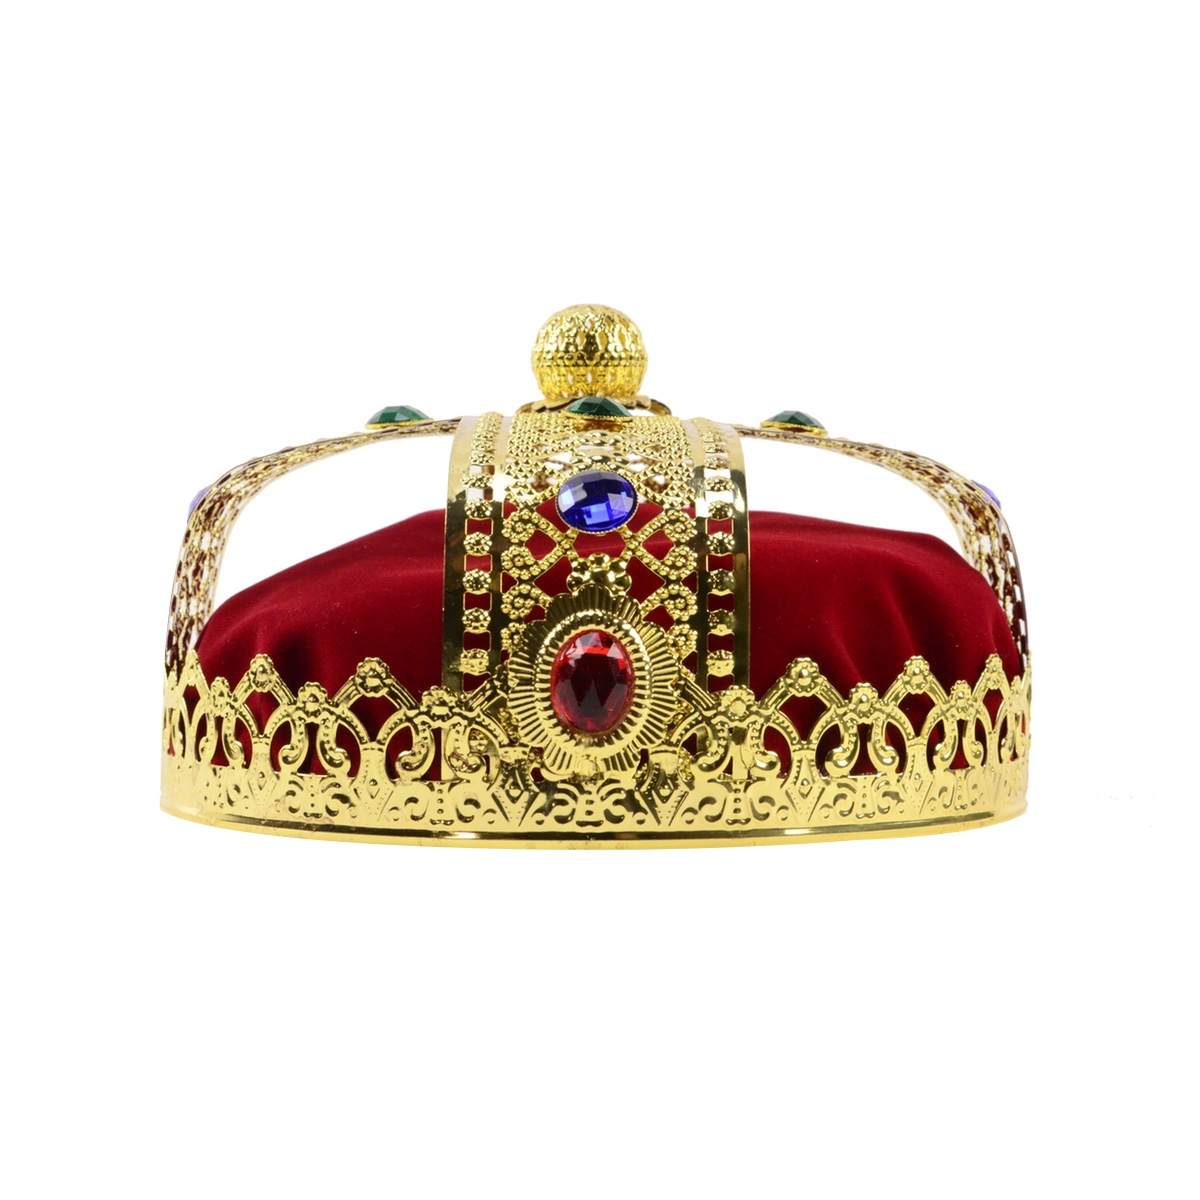 Medieval Men Deluxe Crown Prom King Pageant Theater Play Prop Costume Accessory